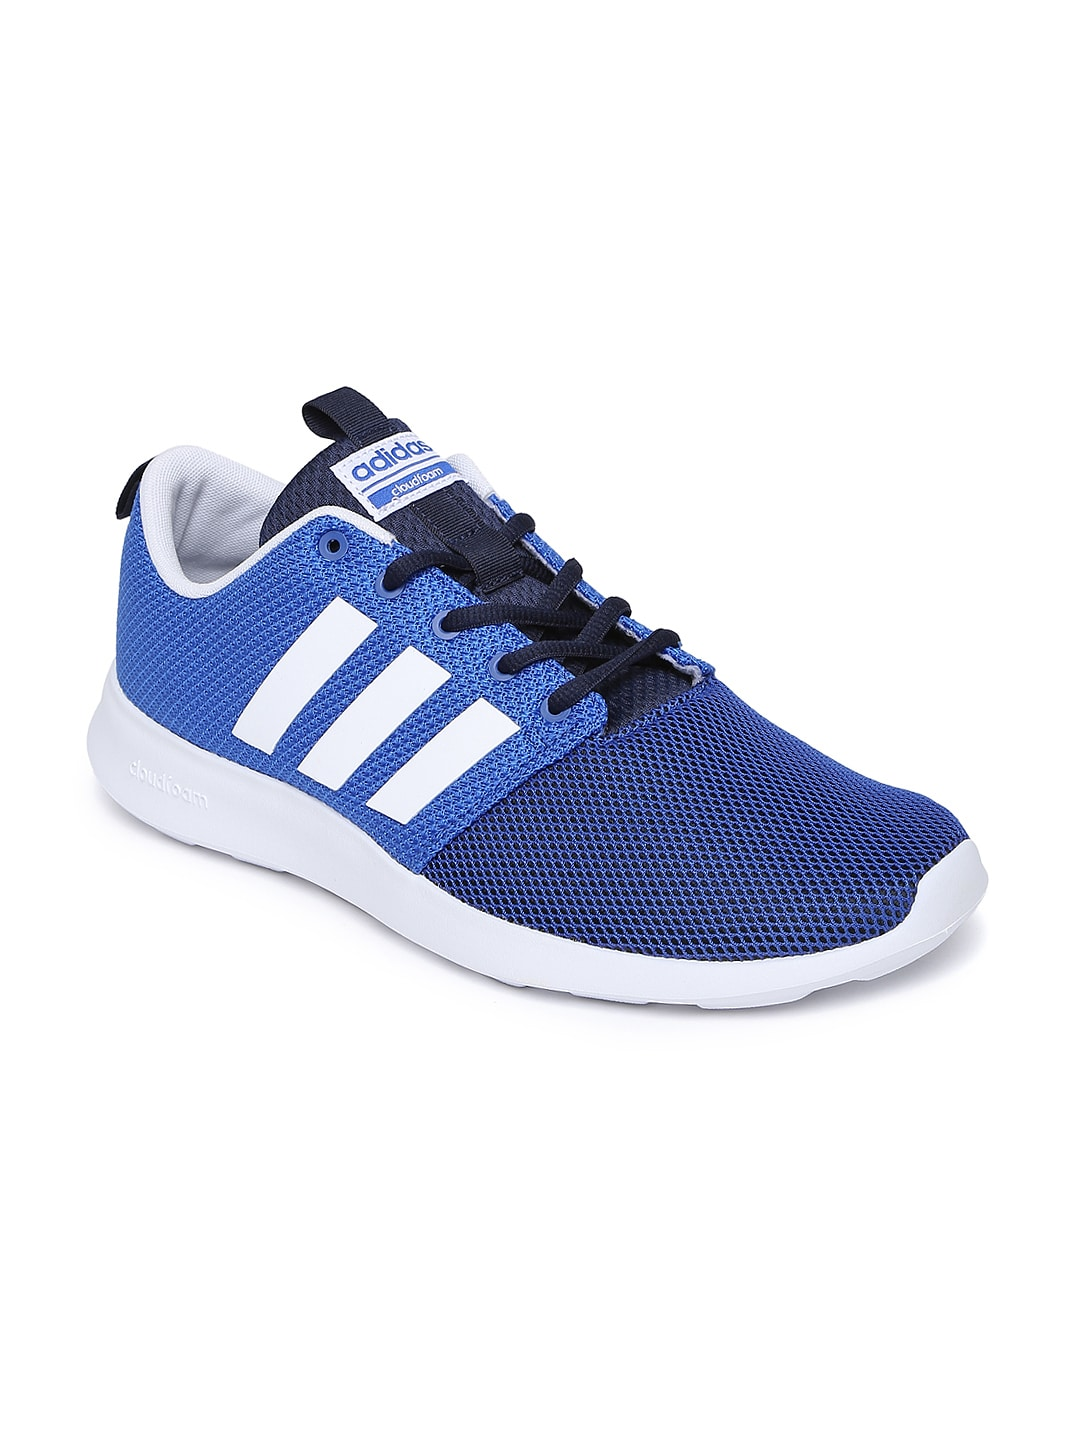 Shopping > adidas neo cloudfoam footbed price |